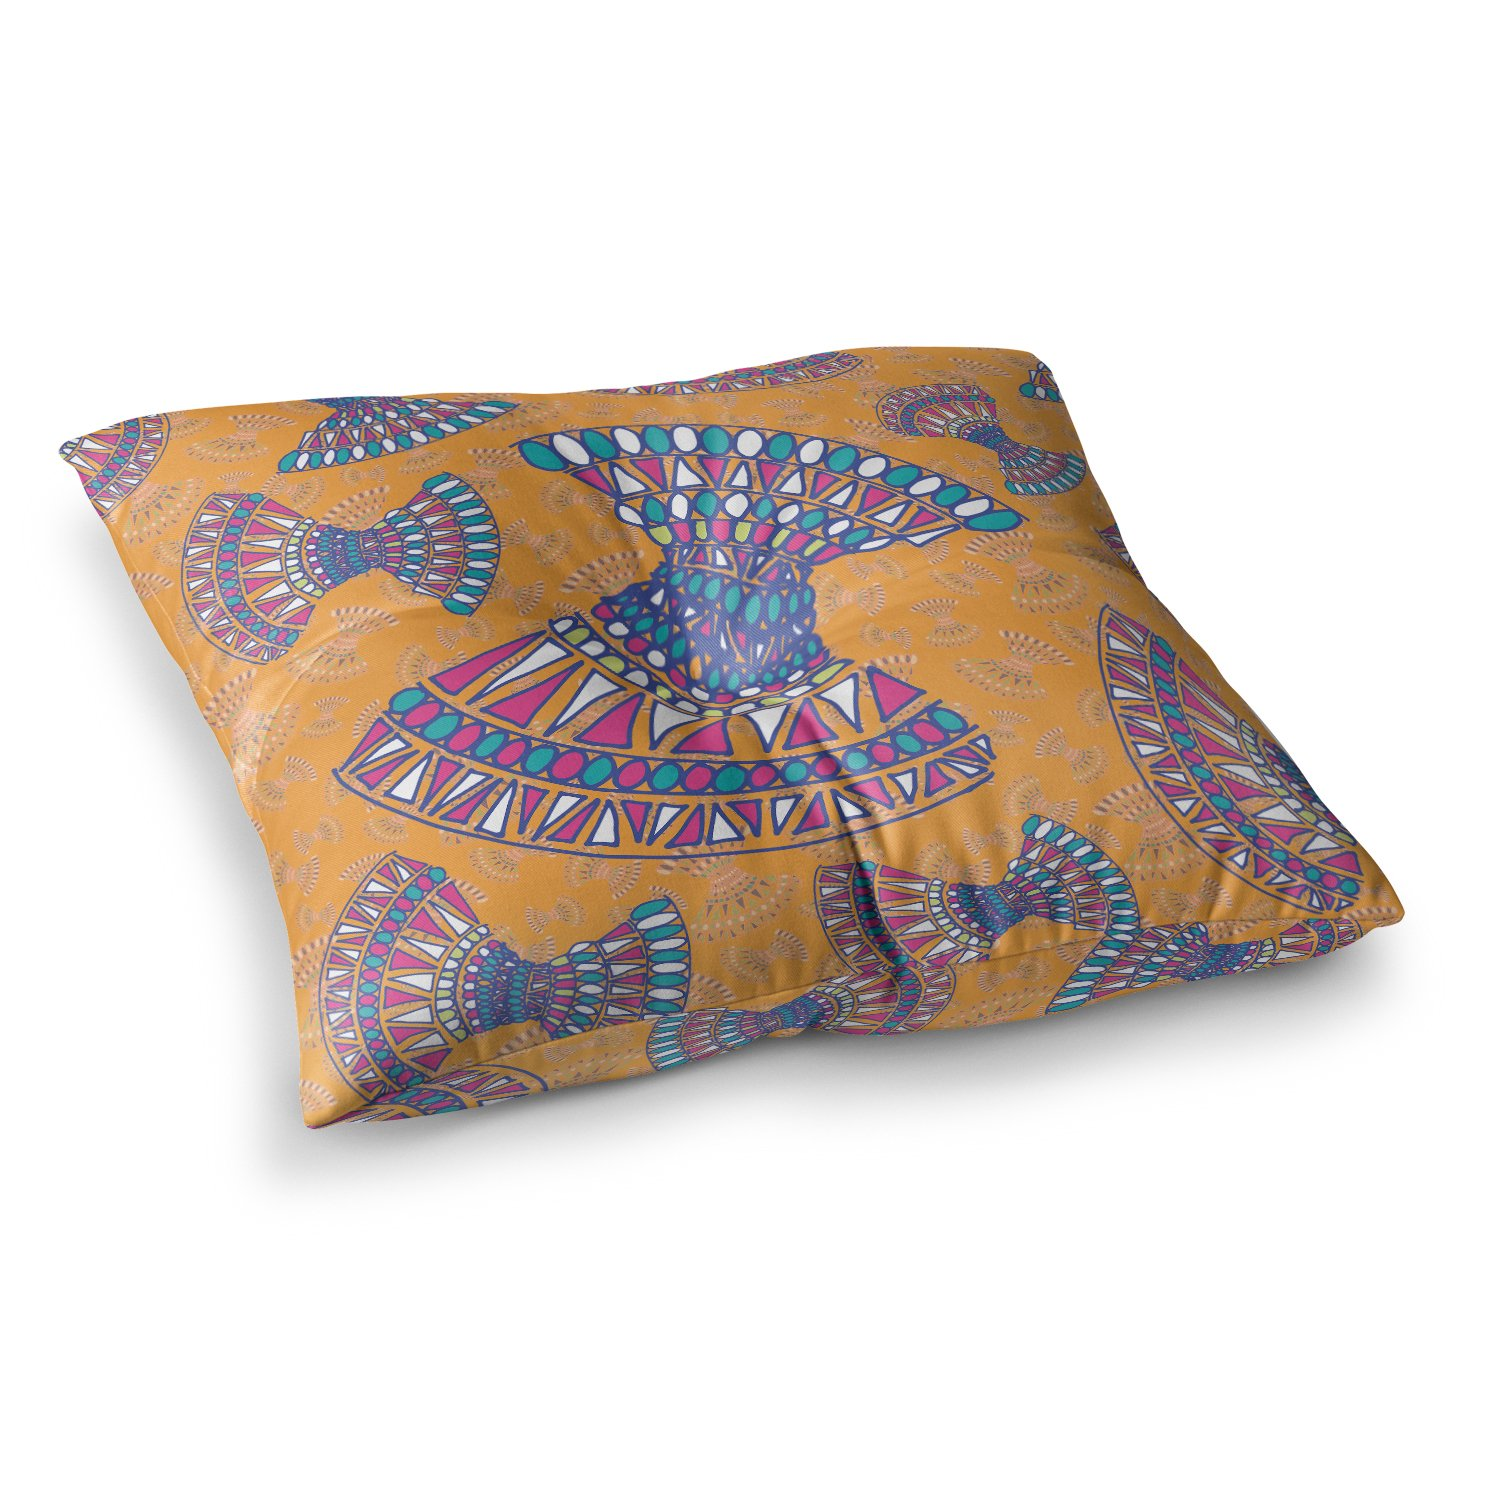 Kess InHouse Miranda MOL Tribal Fun Orange Abstract Tangerine 23 x 23 Square Floor Pillow